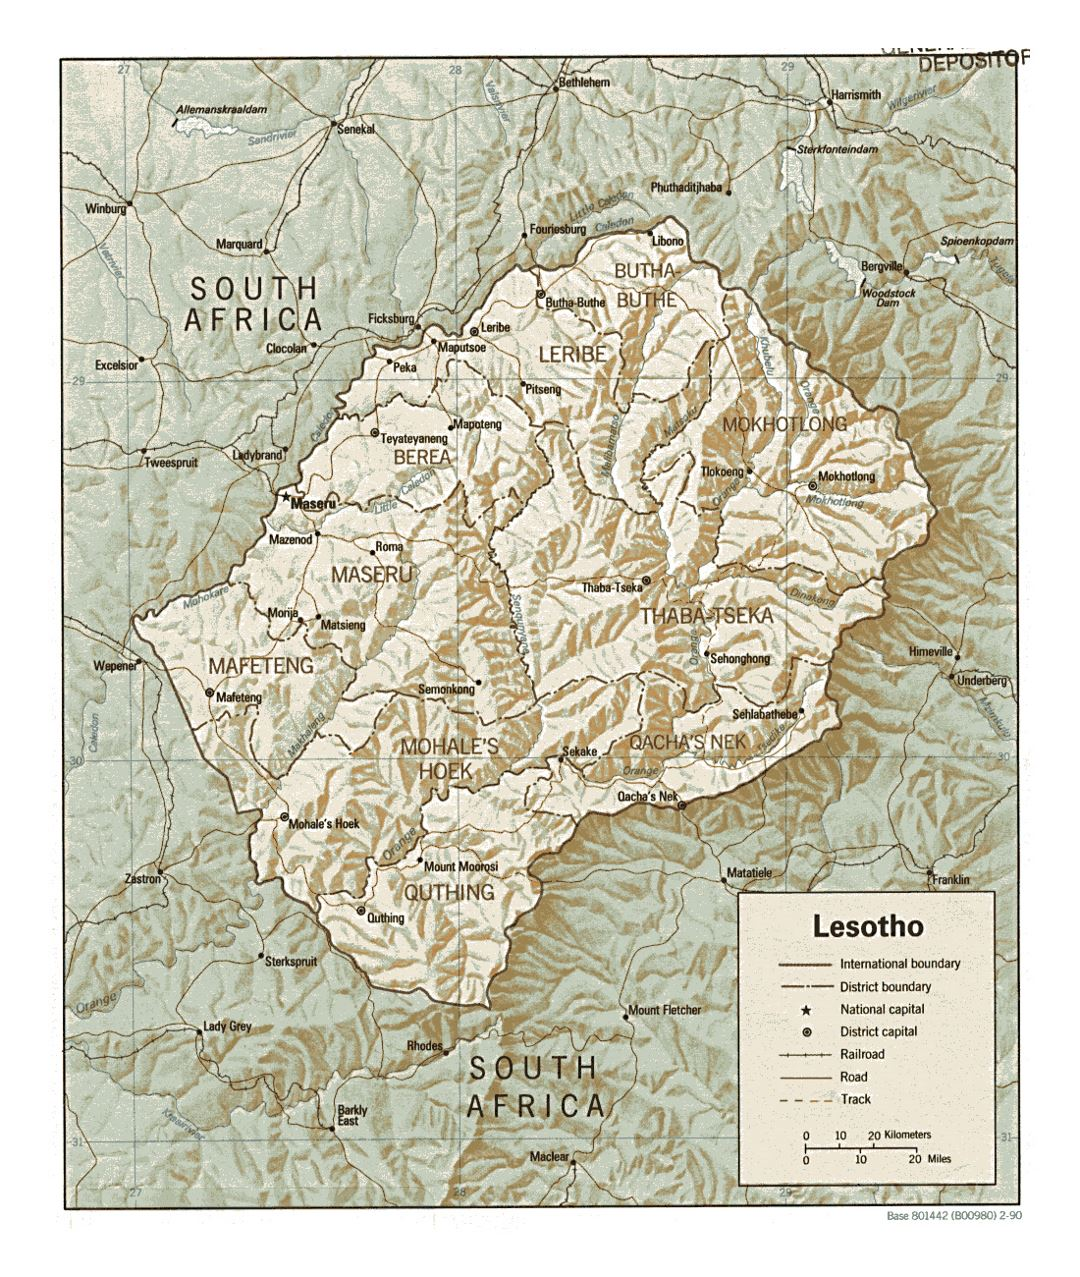 Detailed political and administrative map of Lesotho with relief, roads, railroads and major cities - 1990